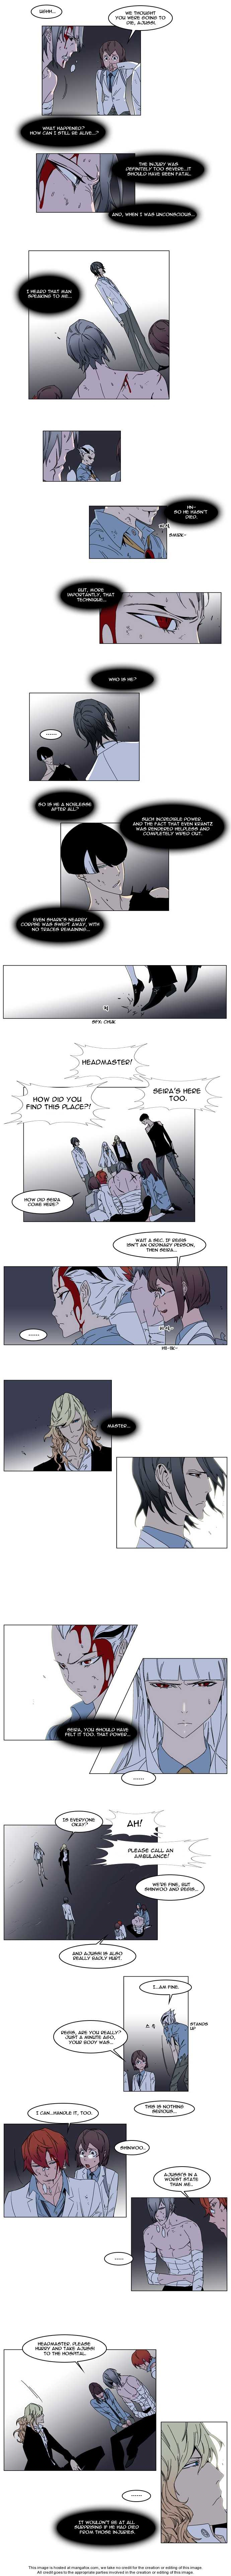 Noblesse 137 Page 2